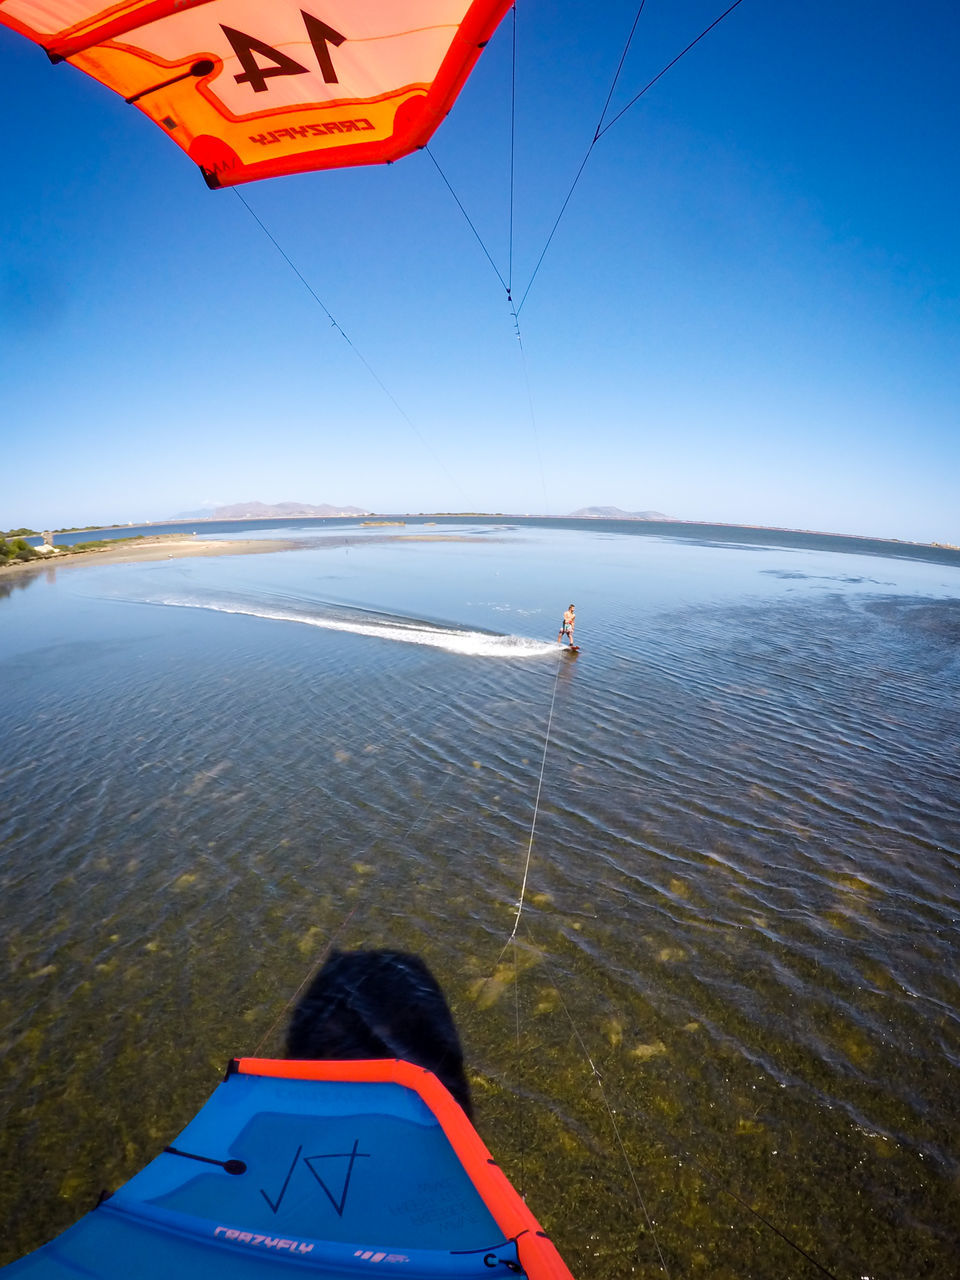 sea, real people, one person, nature, water, transportation, leisure activity, day, blue, scenics, beauty in nature, flying, rear view, men, tranquility, sky, adventure, mid-air, lifestyles, outdoors, air vehicle, vacations, horizon over water, people